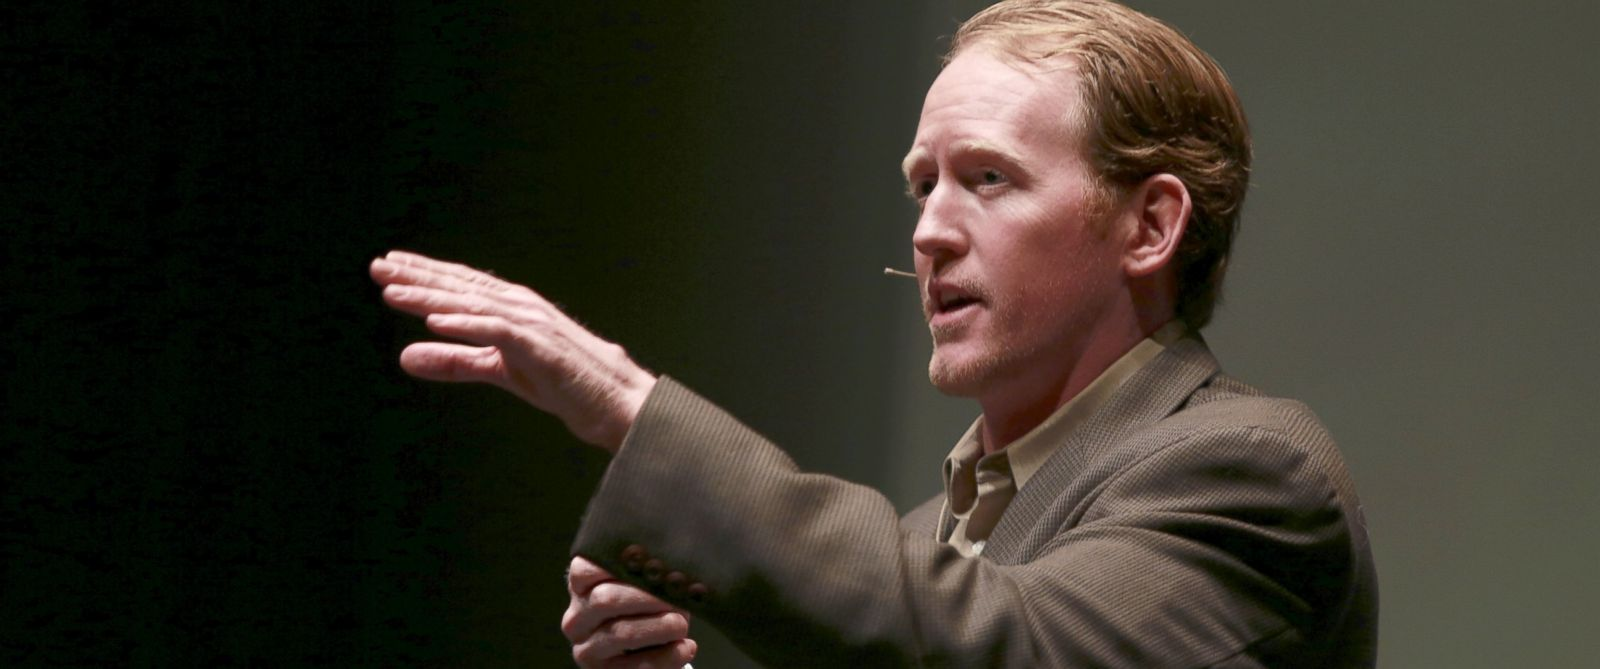 """PHOTO: Robert ONeill, a former U.S. Navy SEAL, speaks at the """"Best of Blount"""" Chamber of Commerce awards ceremony at the Clayton Center for the Arts in Maryville, Tenn., Nov. 6, 2014."""